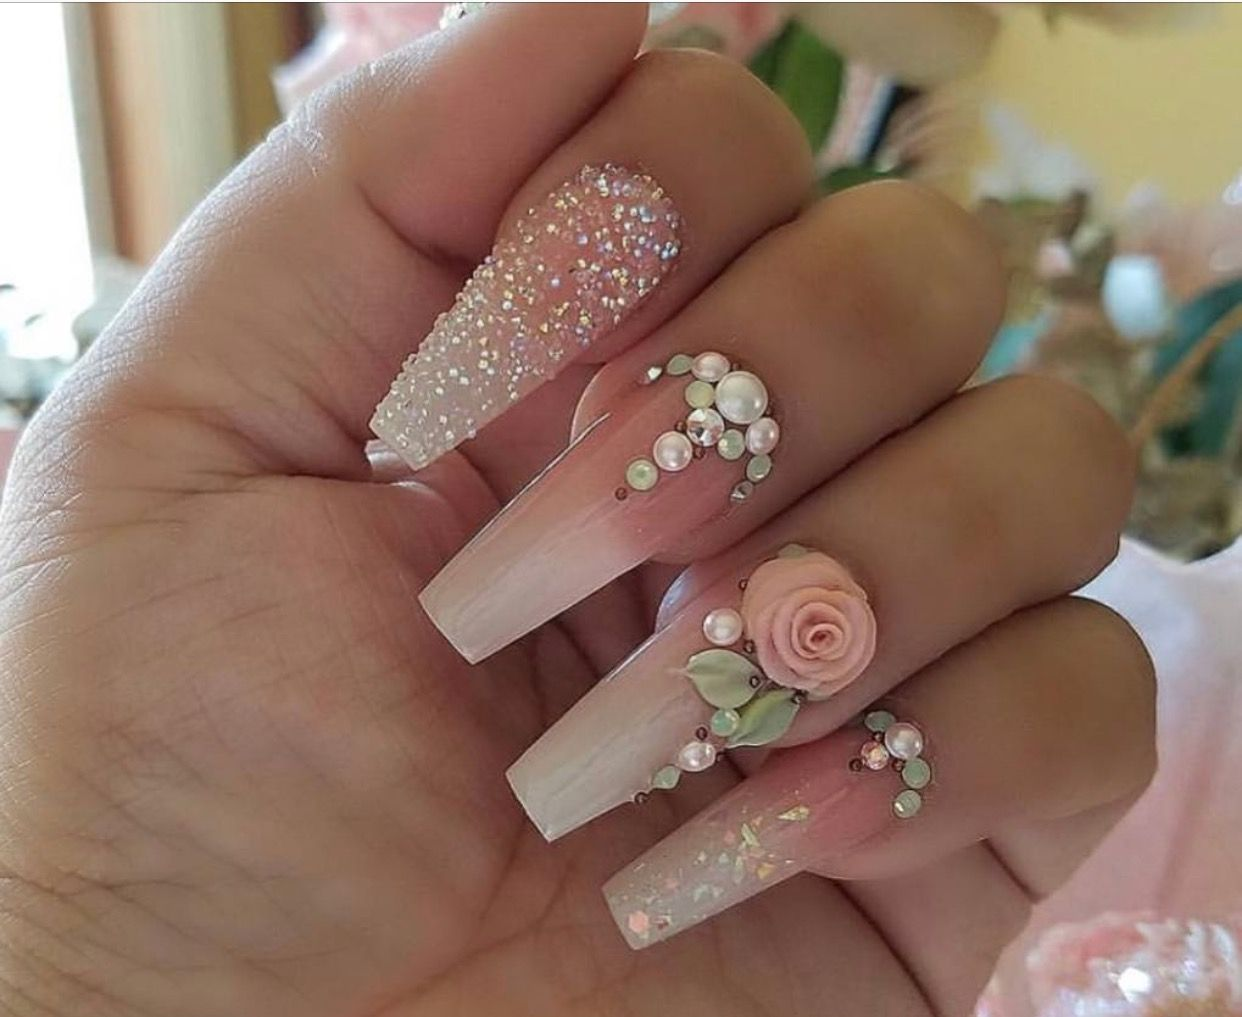 Pin by Kat Staxx on Nail\'d It! | Pinterest | Beautiful nail designs ...